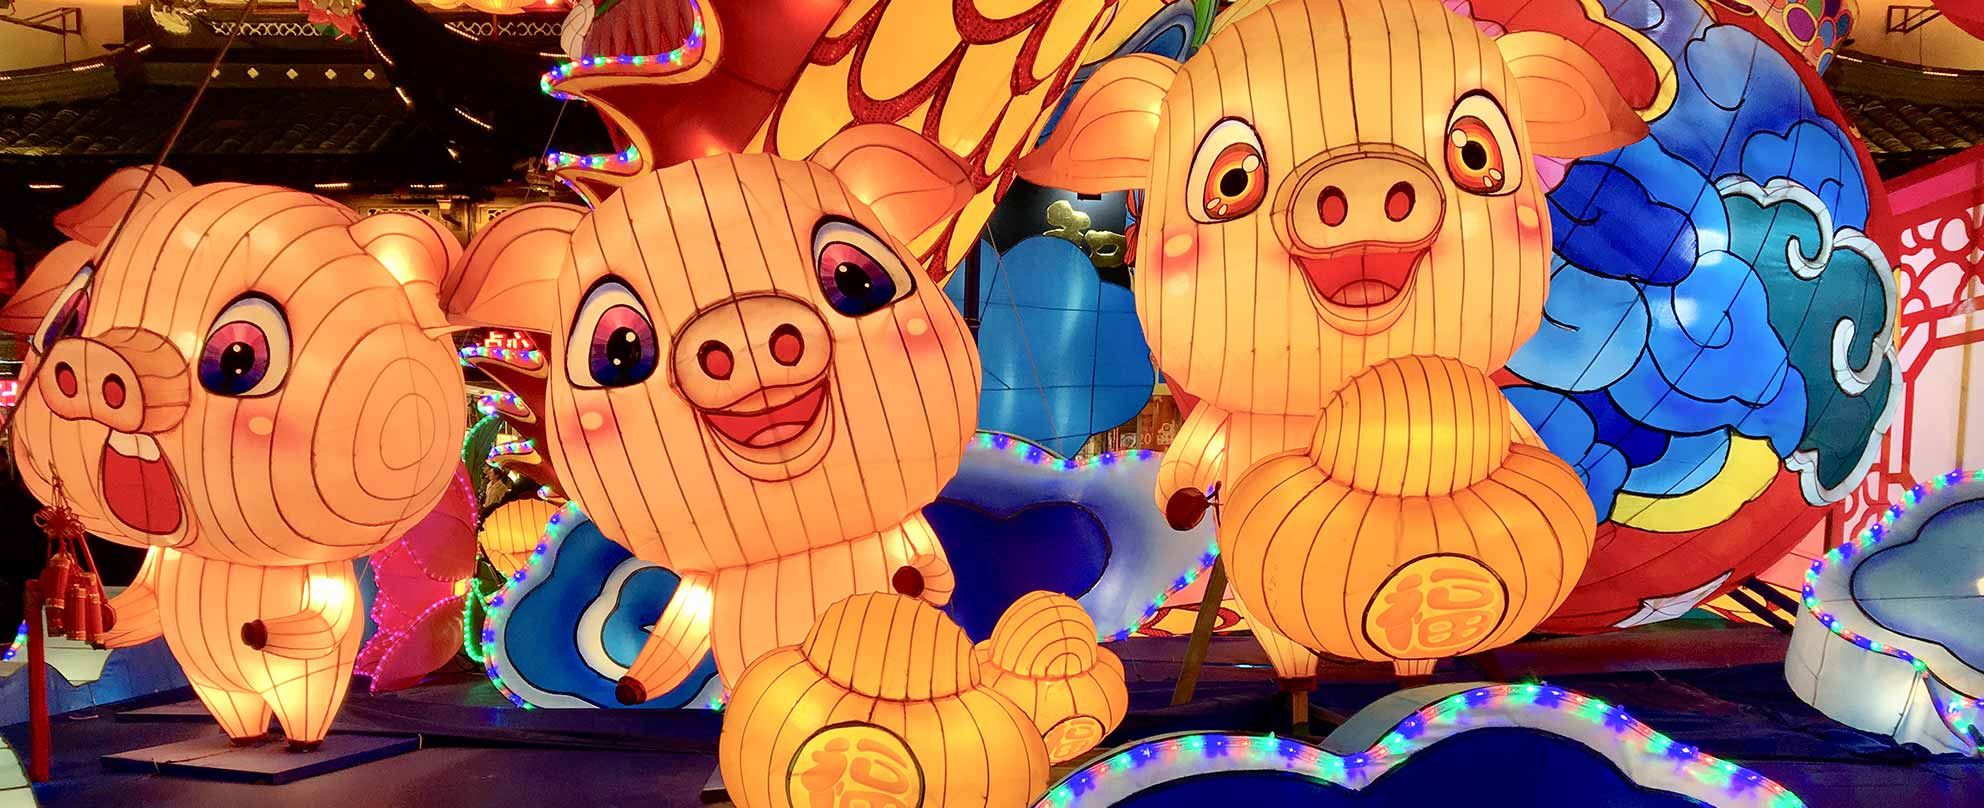 Photo of Chinese New Year decorations including three brightly coloured and lit cartoon pigs